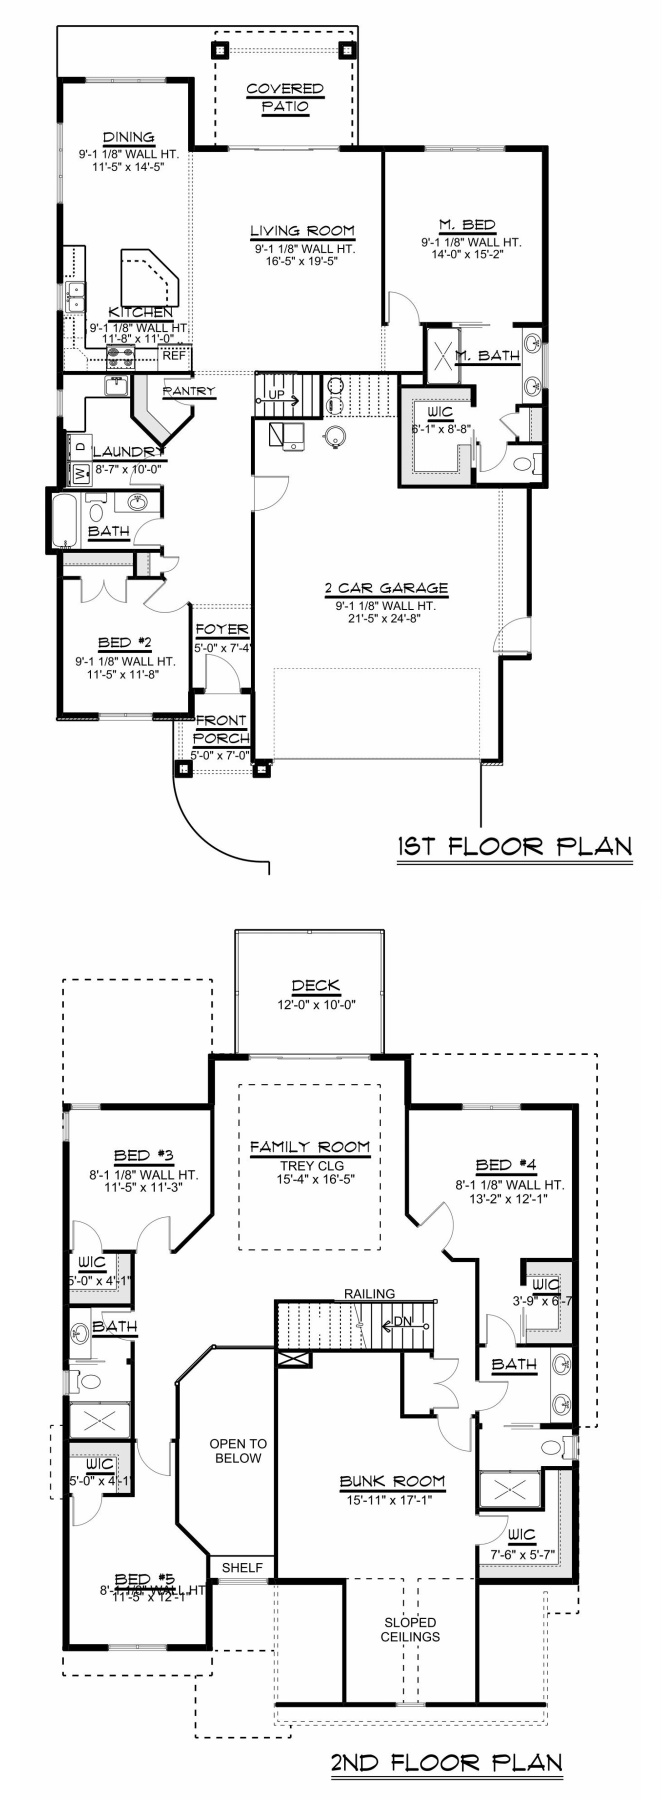 plans by chd custom home designs 4